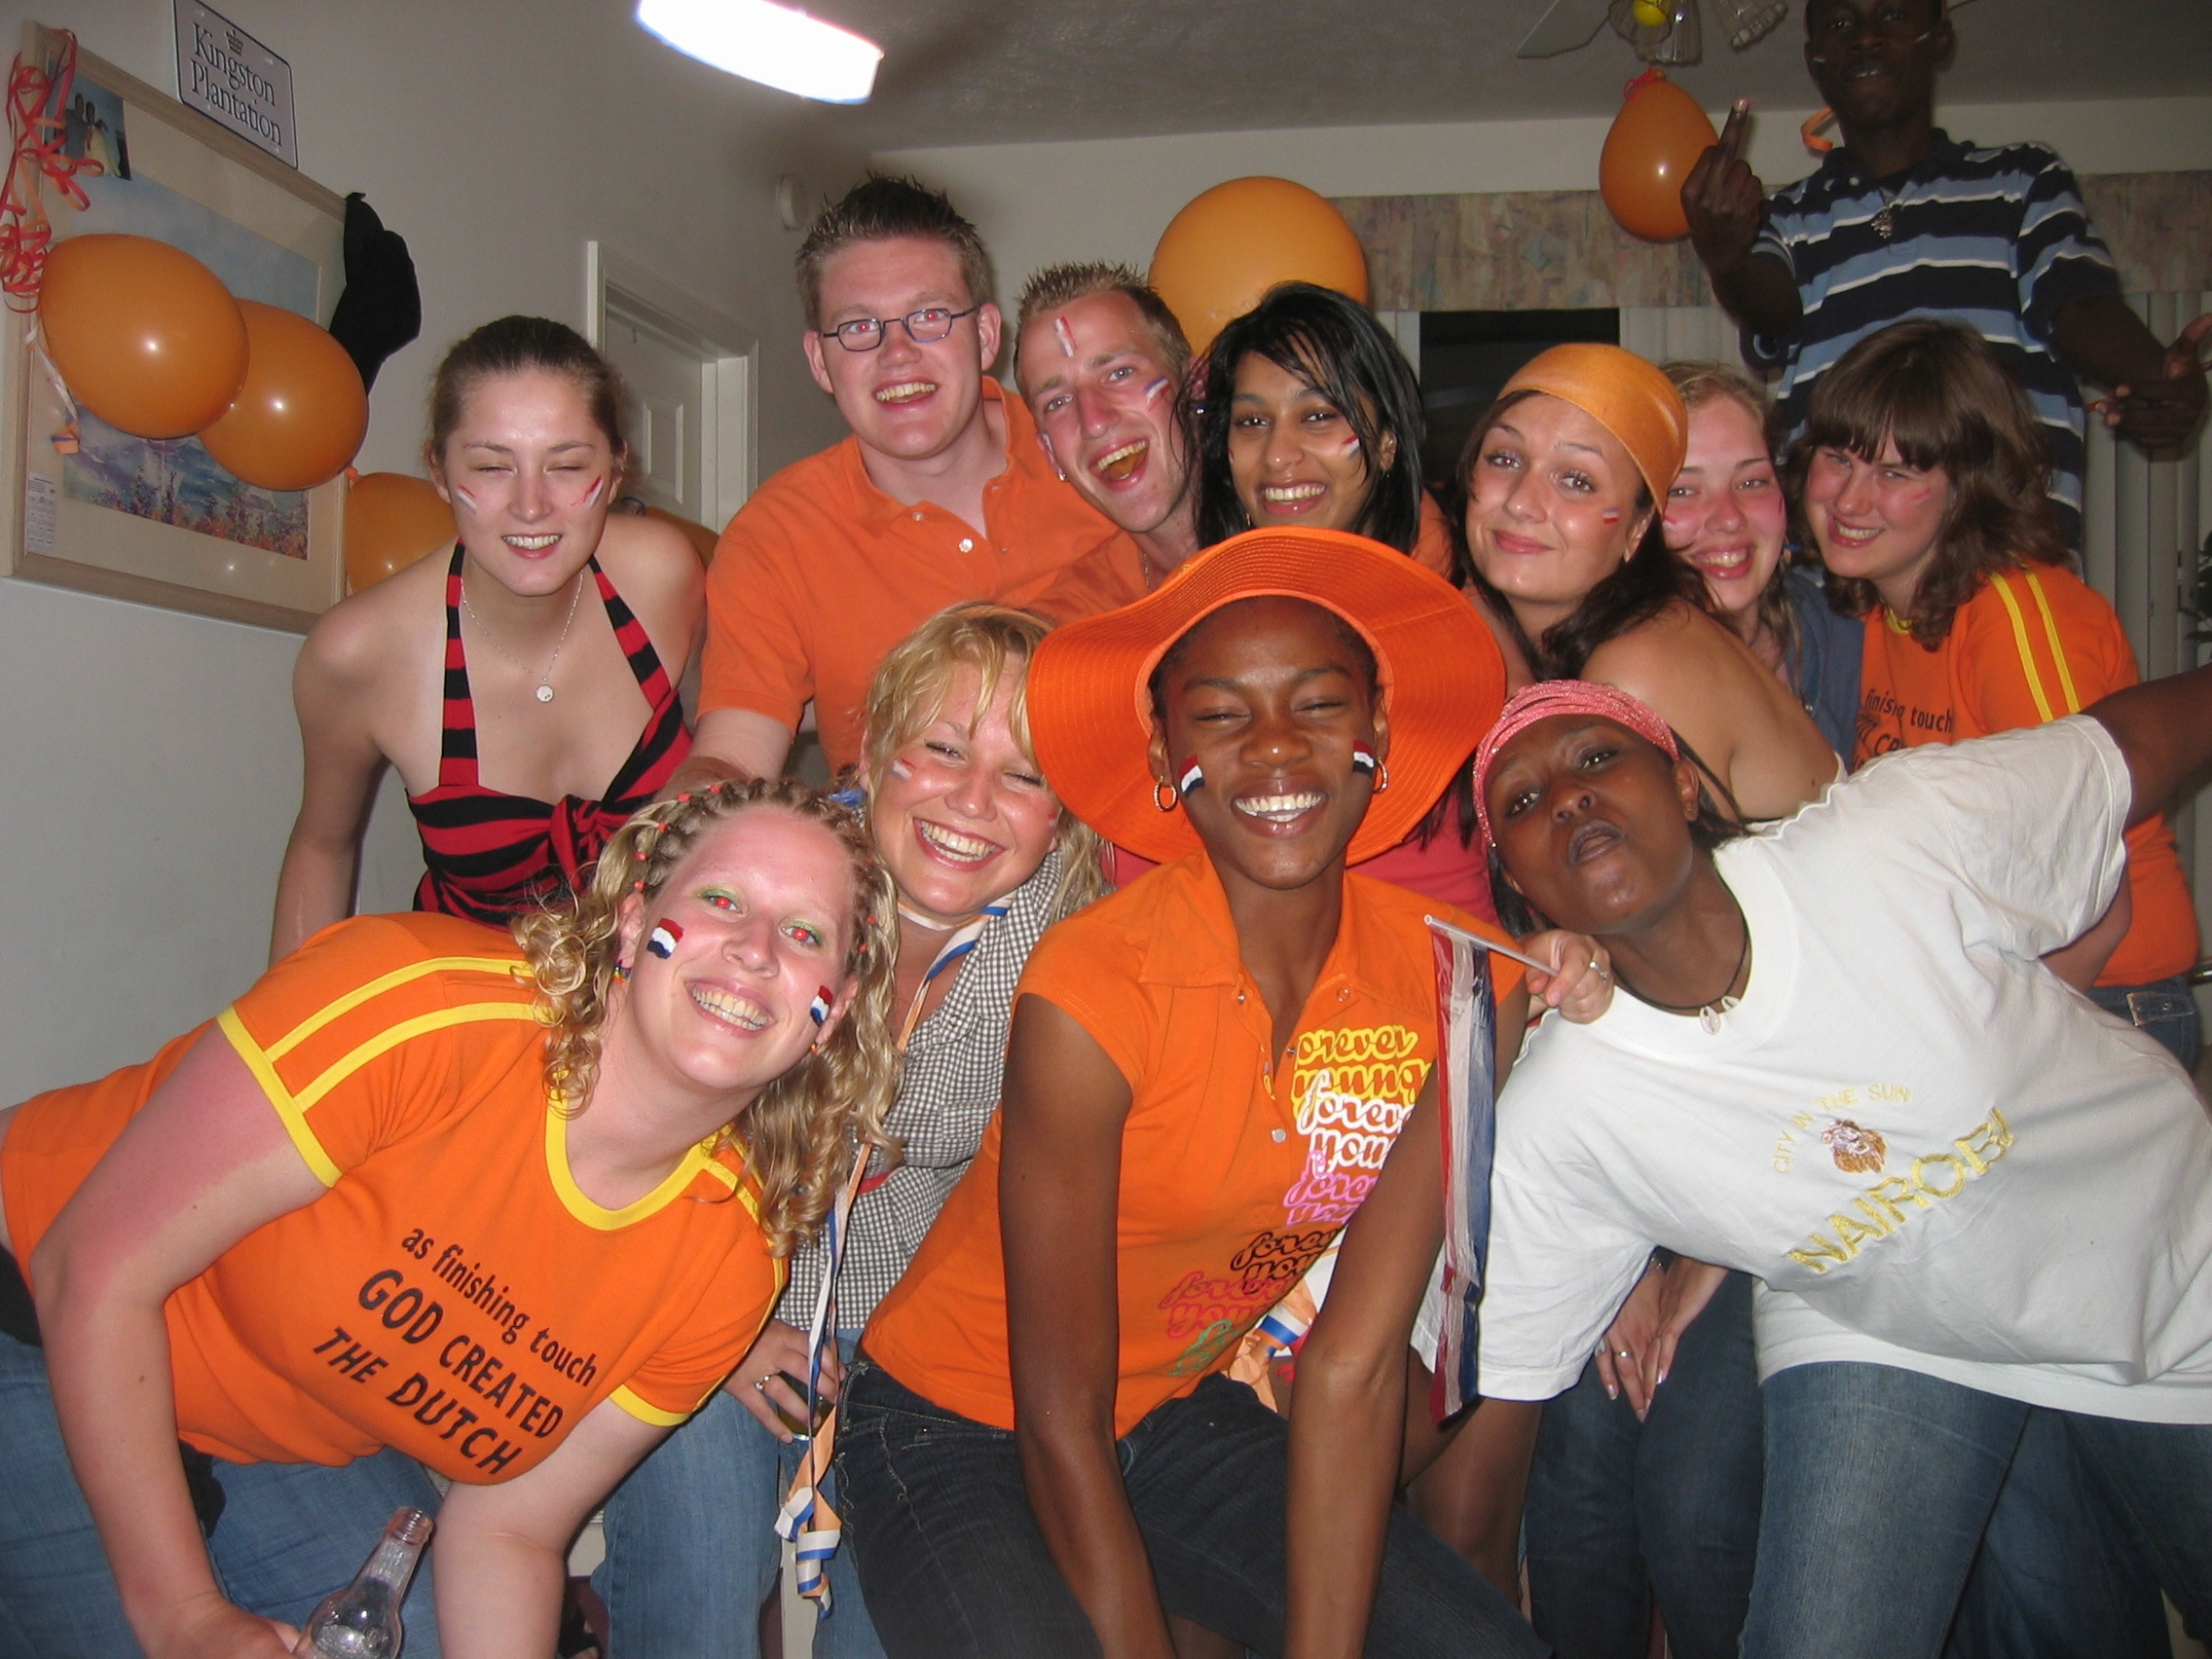 Celebrating Queensday in Myrtle Beach with many different cultures,miss you!